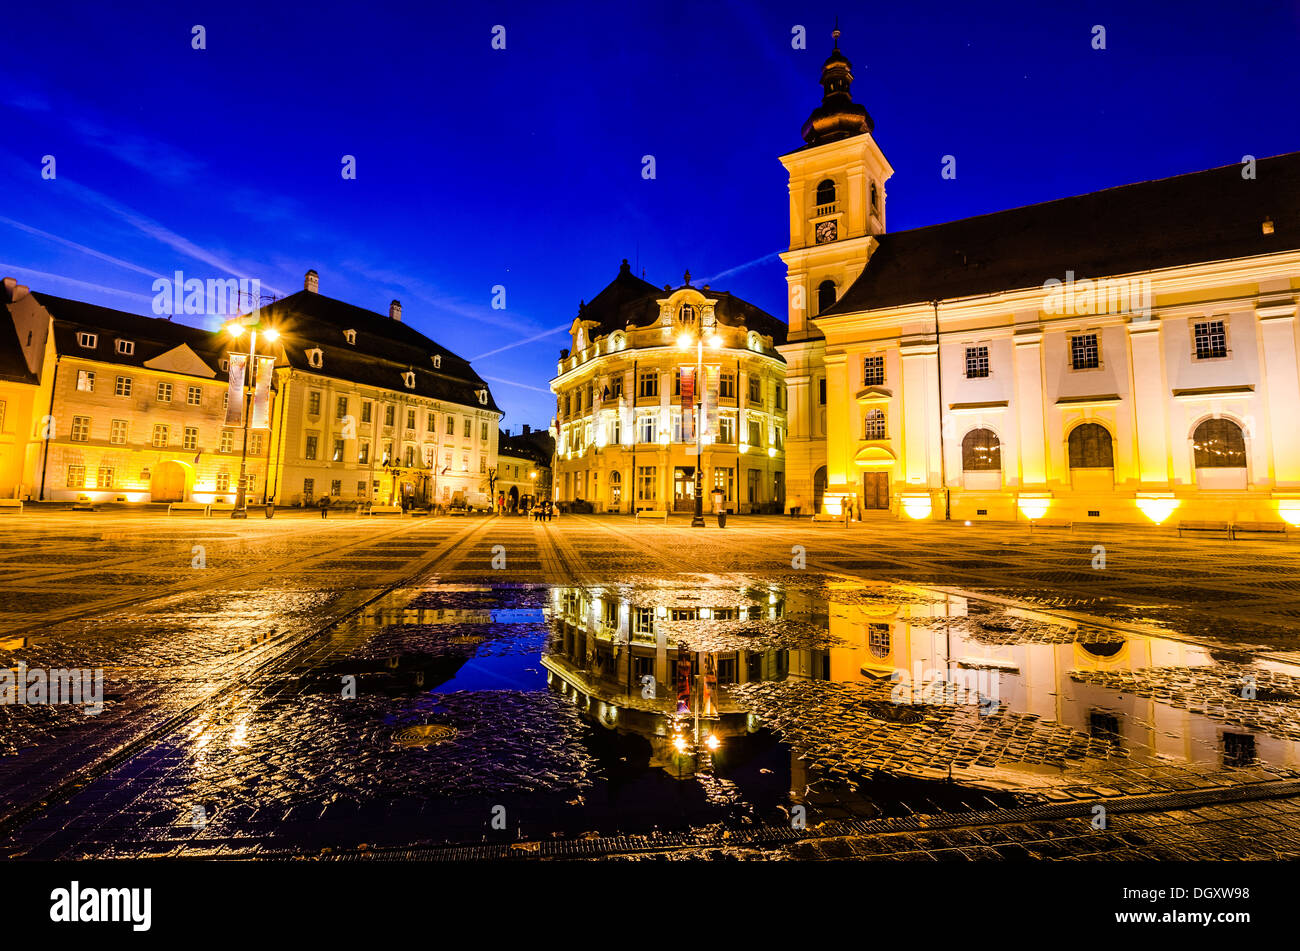 Sibiu town square at blue hour - Stock Image